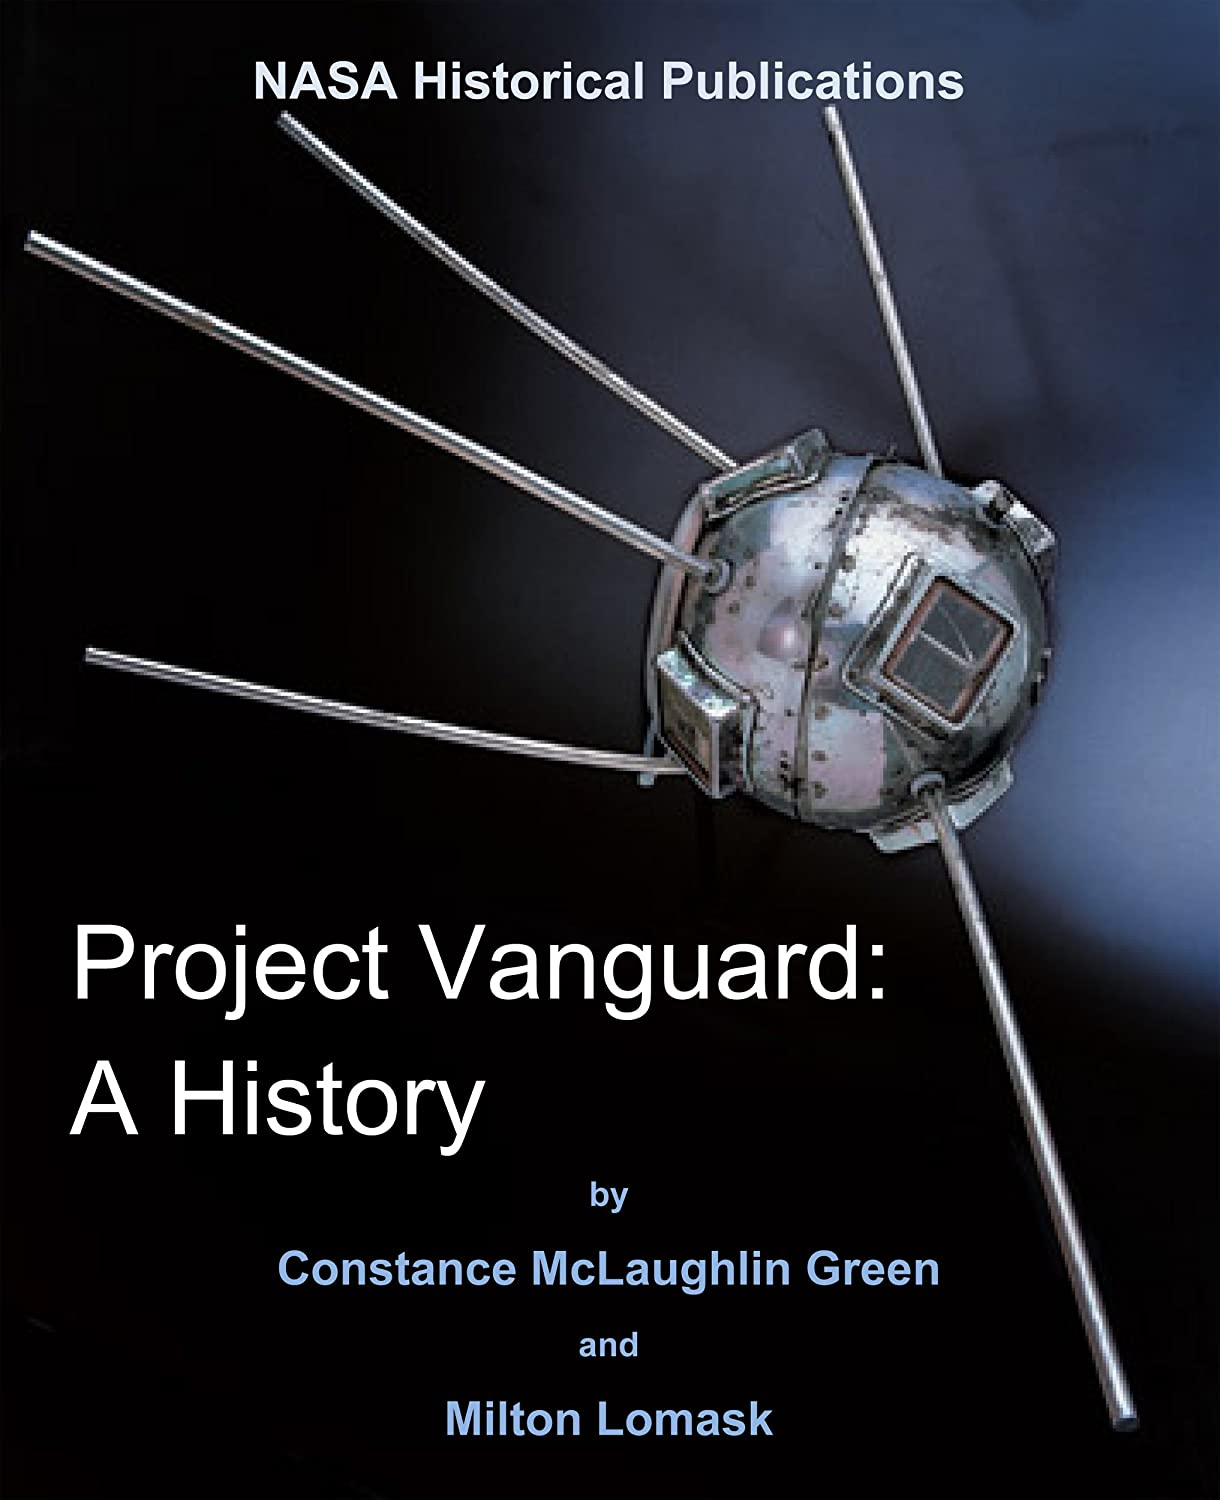 Vanguard NASA Project - Pics about space